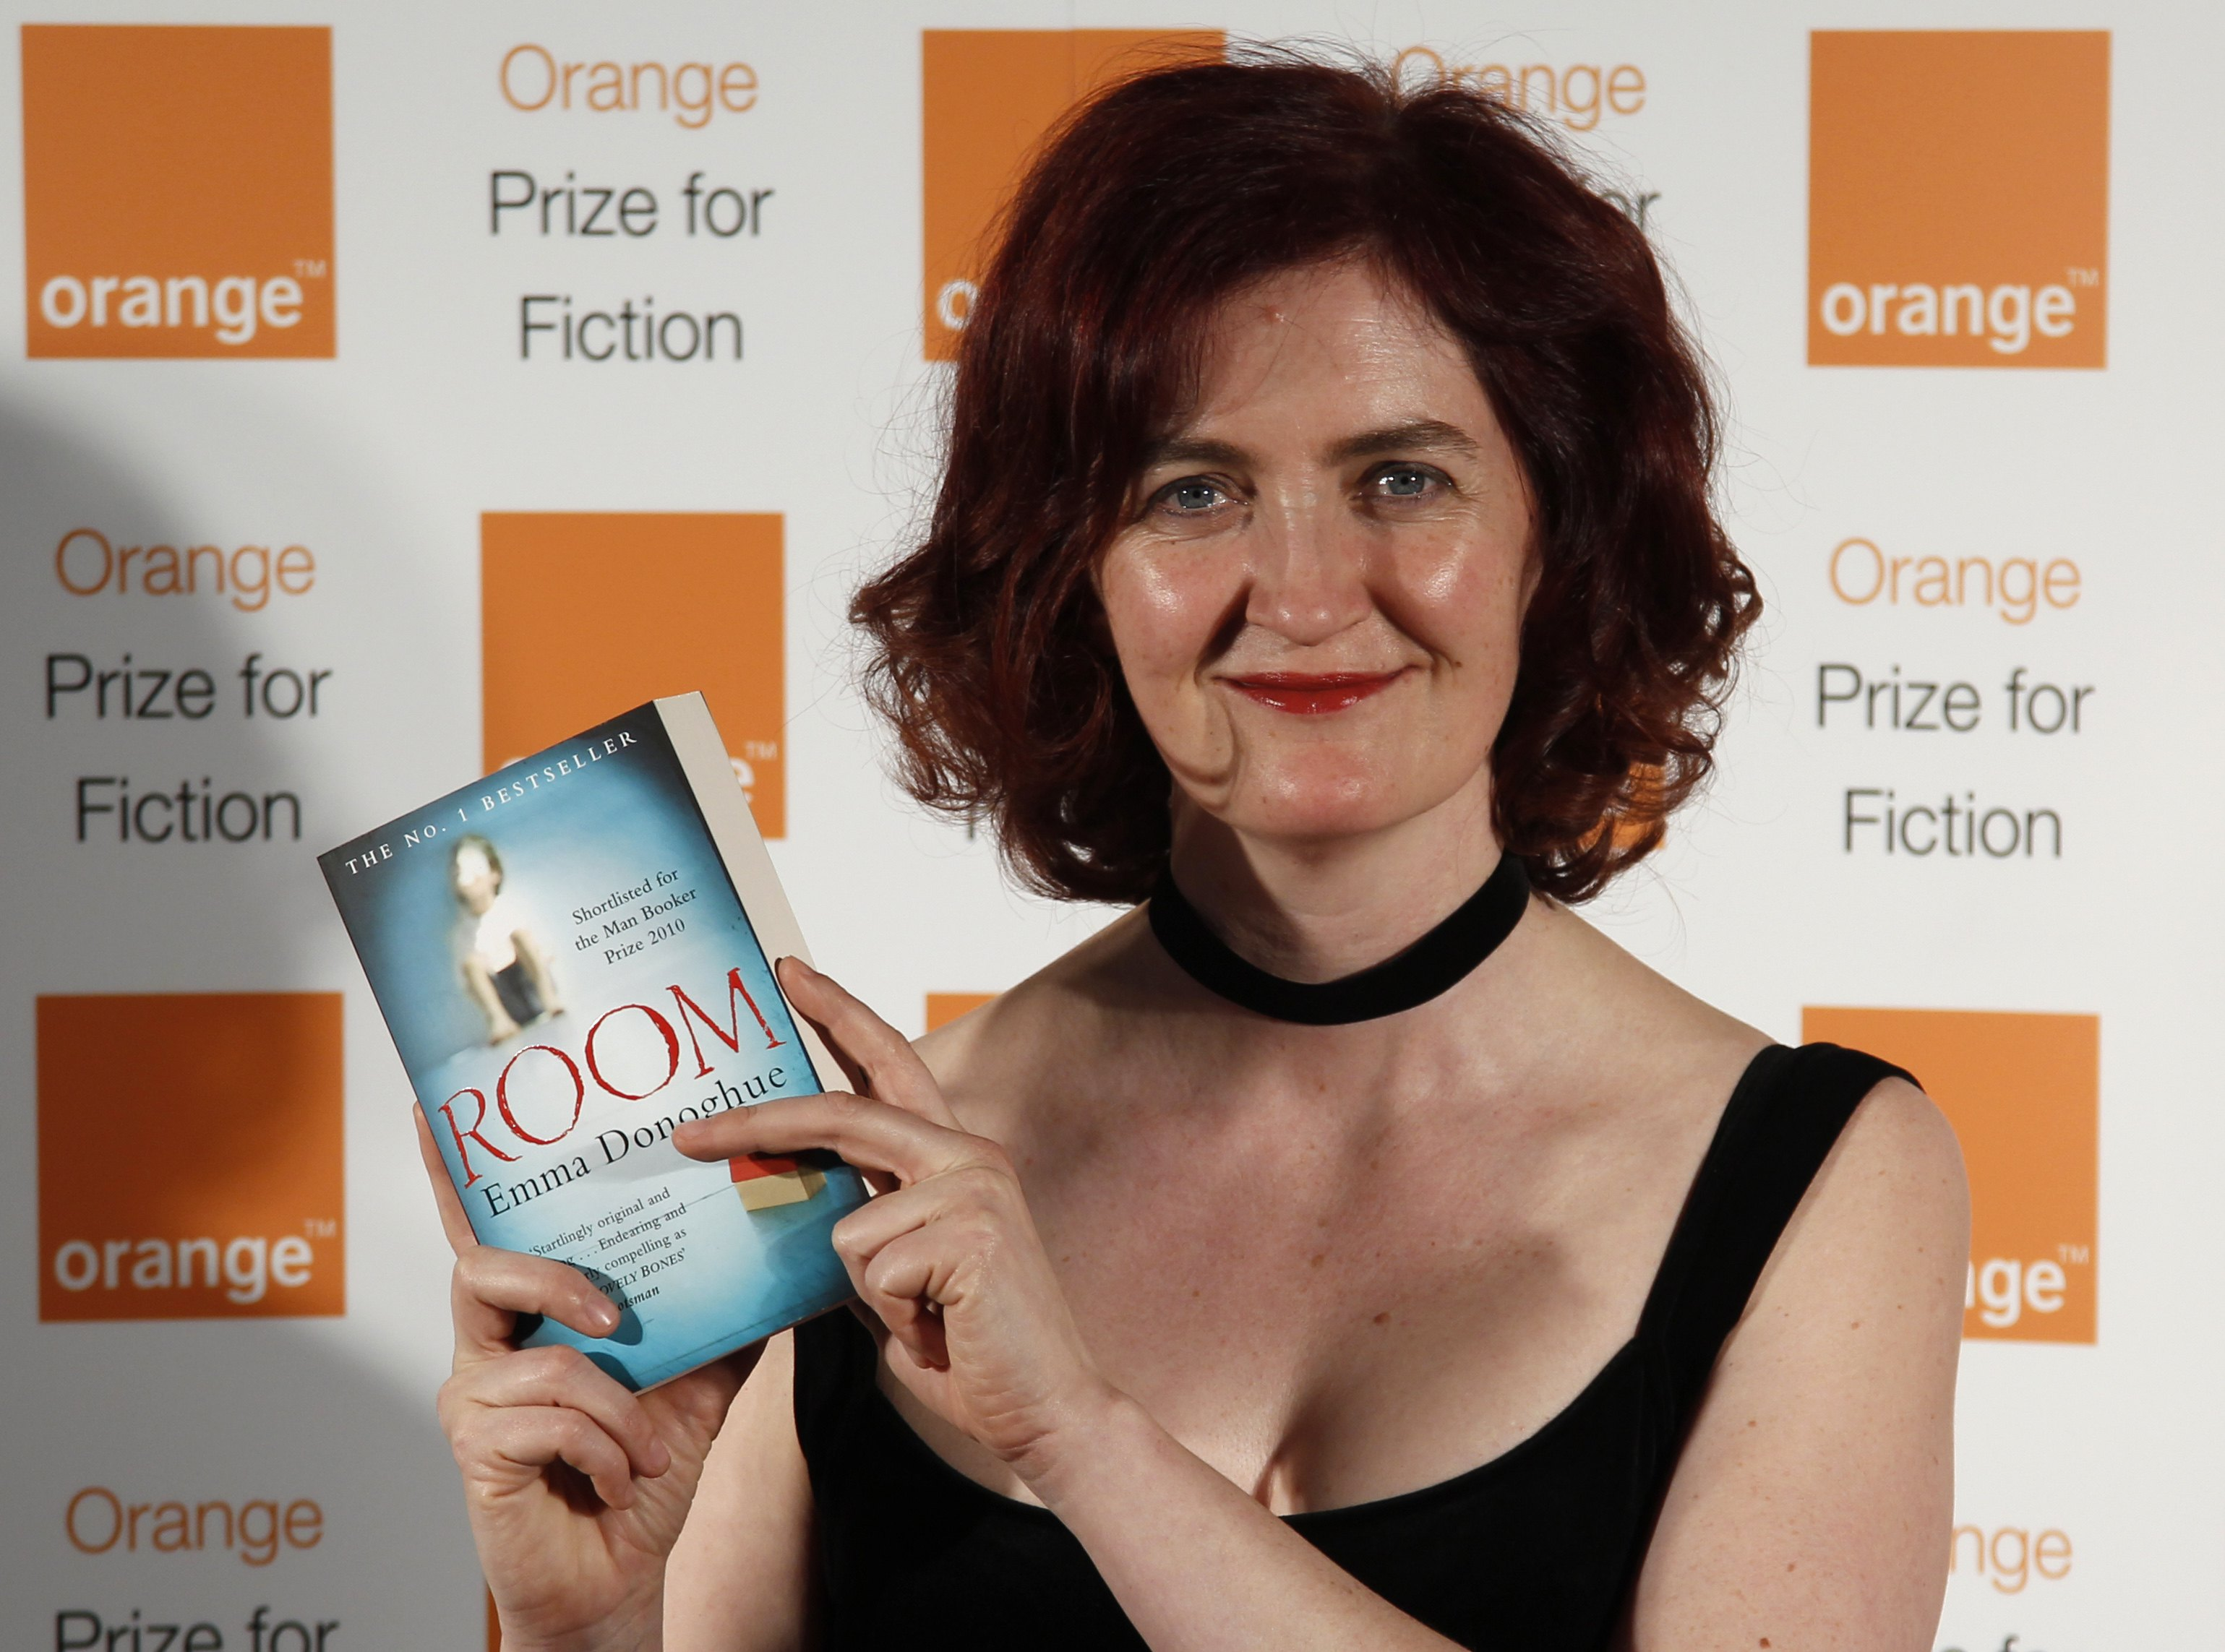 Interview: Room Writer Emma Donoghue   The Young Folks